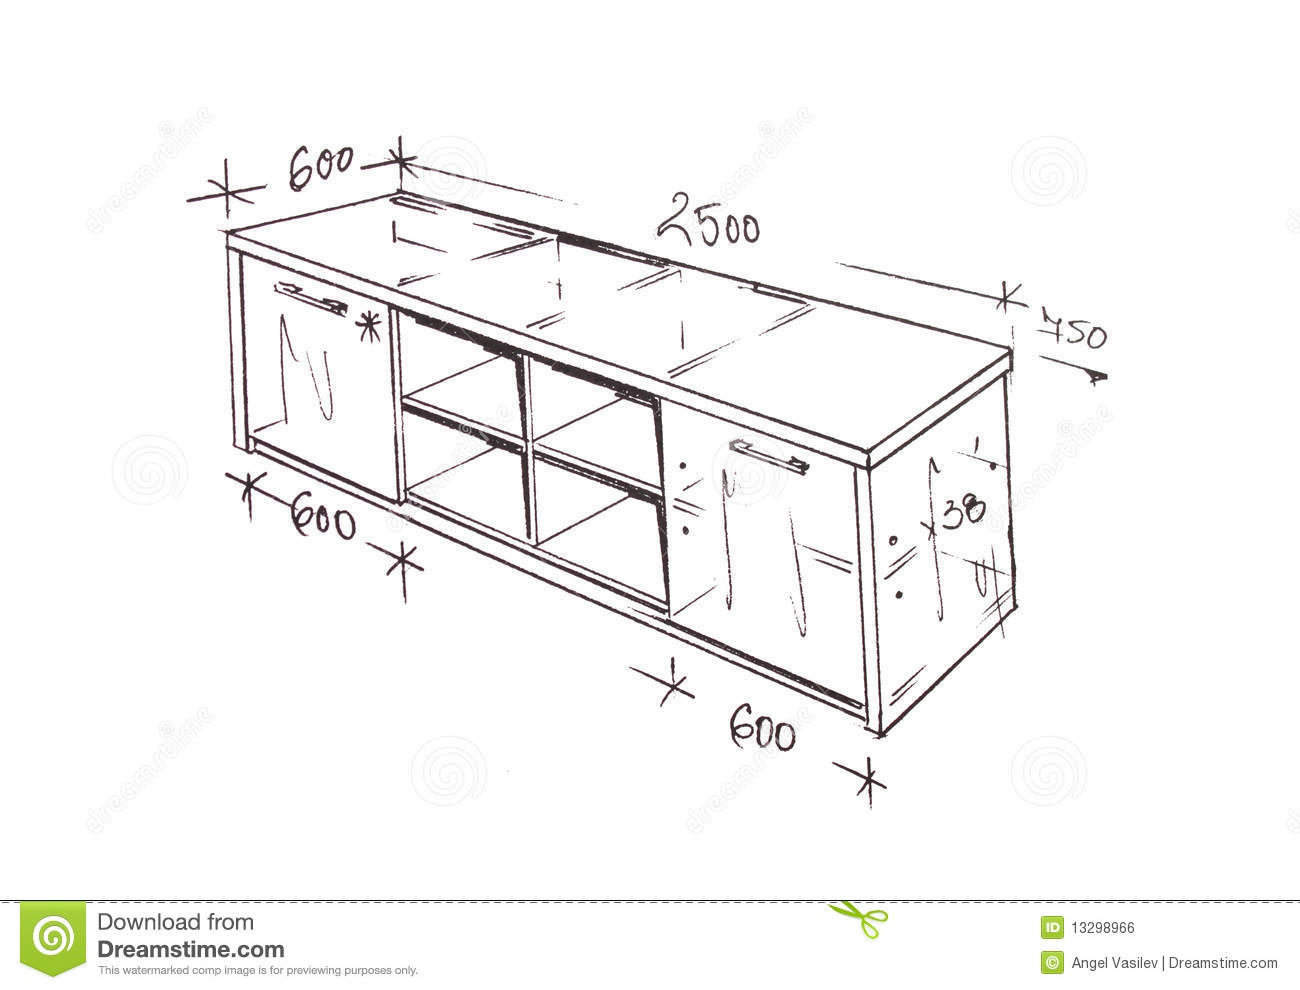 interior design drawings beginner hand drawn illustration of furniture isolated on white please feel welcome to check out my huge superior library interior hand drawings designers modern interior design freehand drawing stock illustration